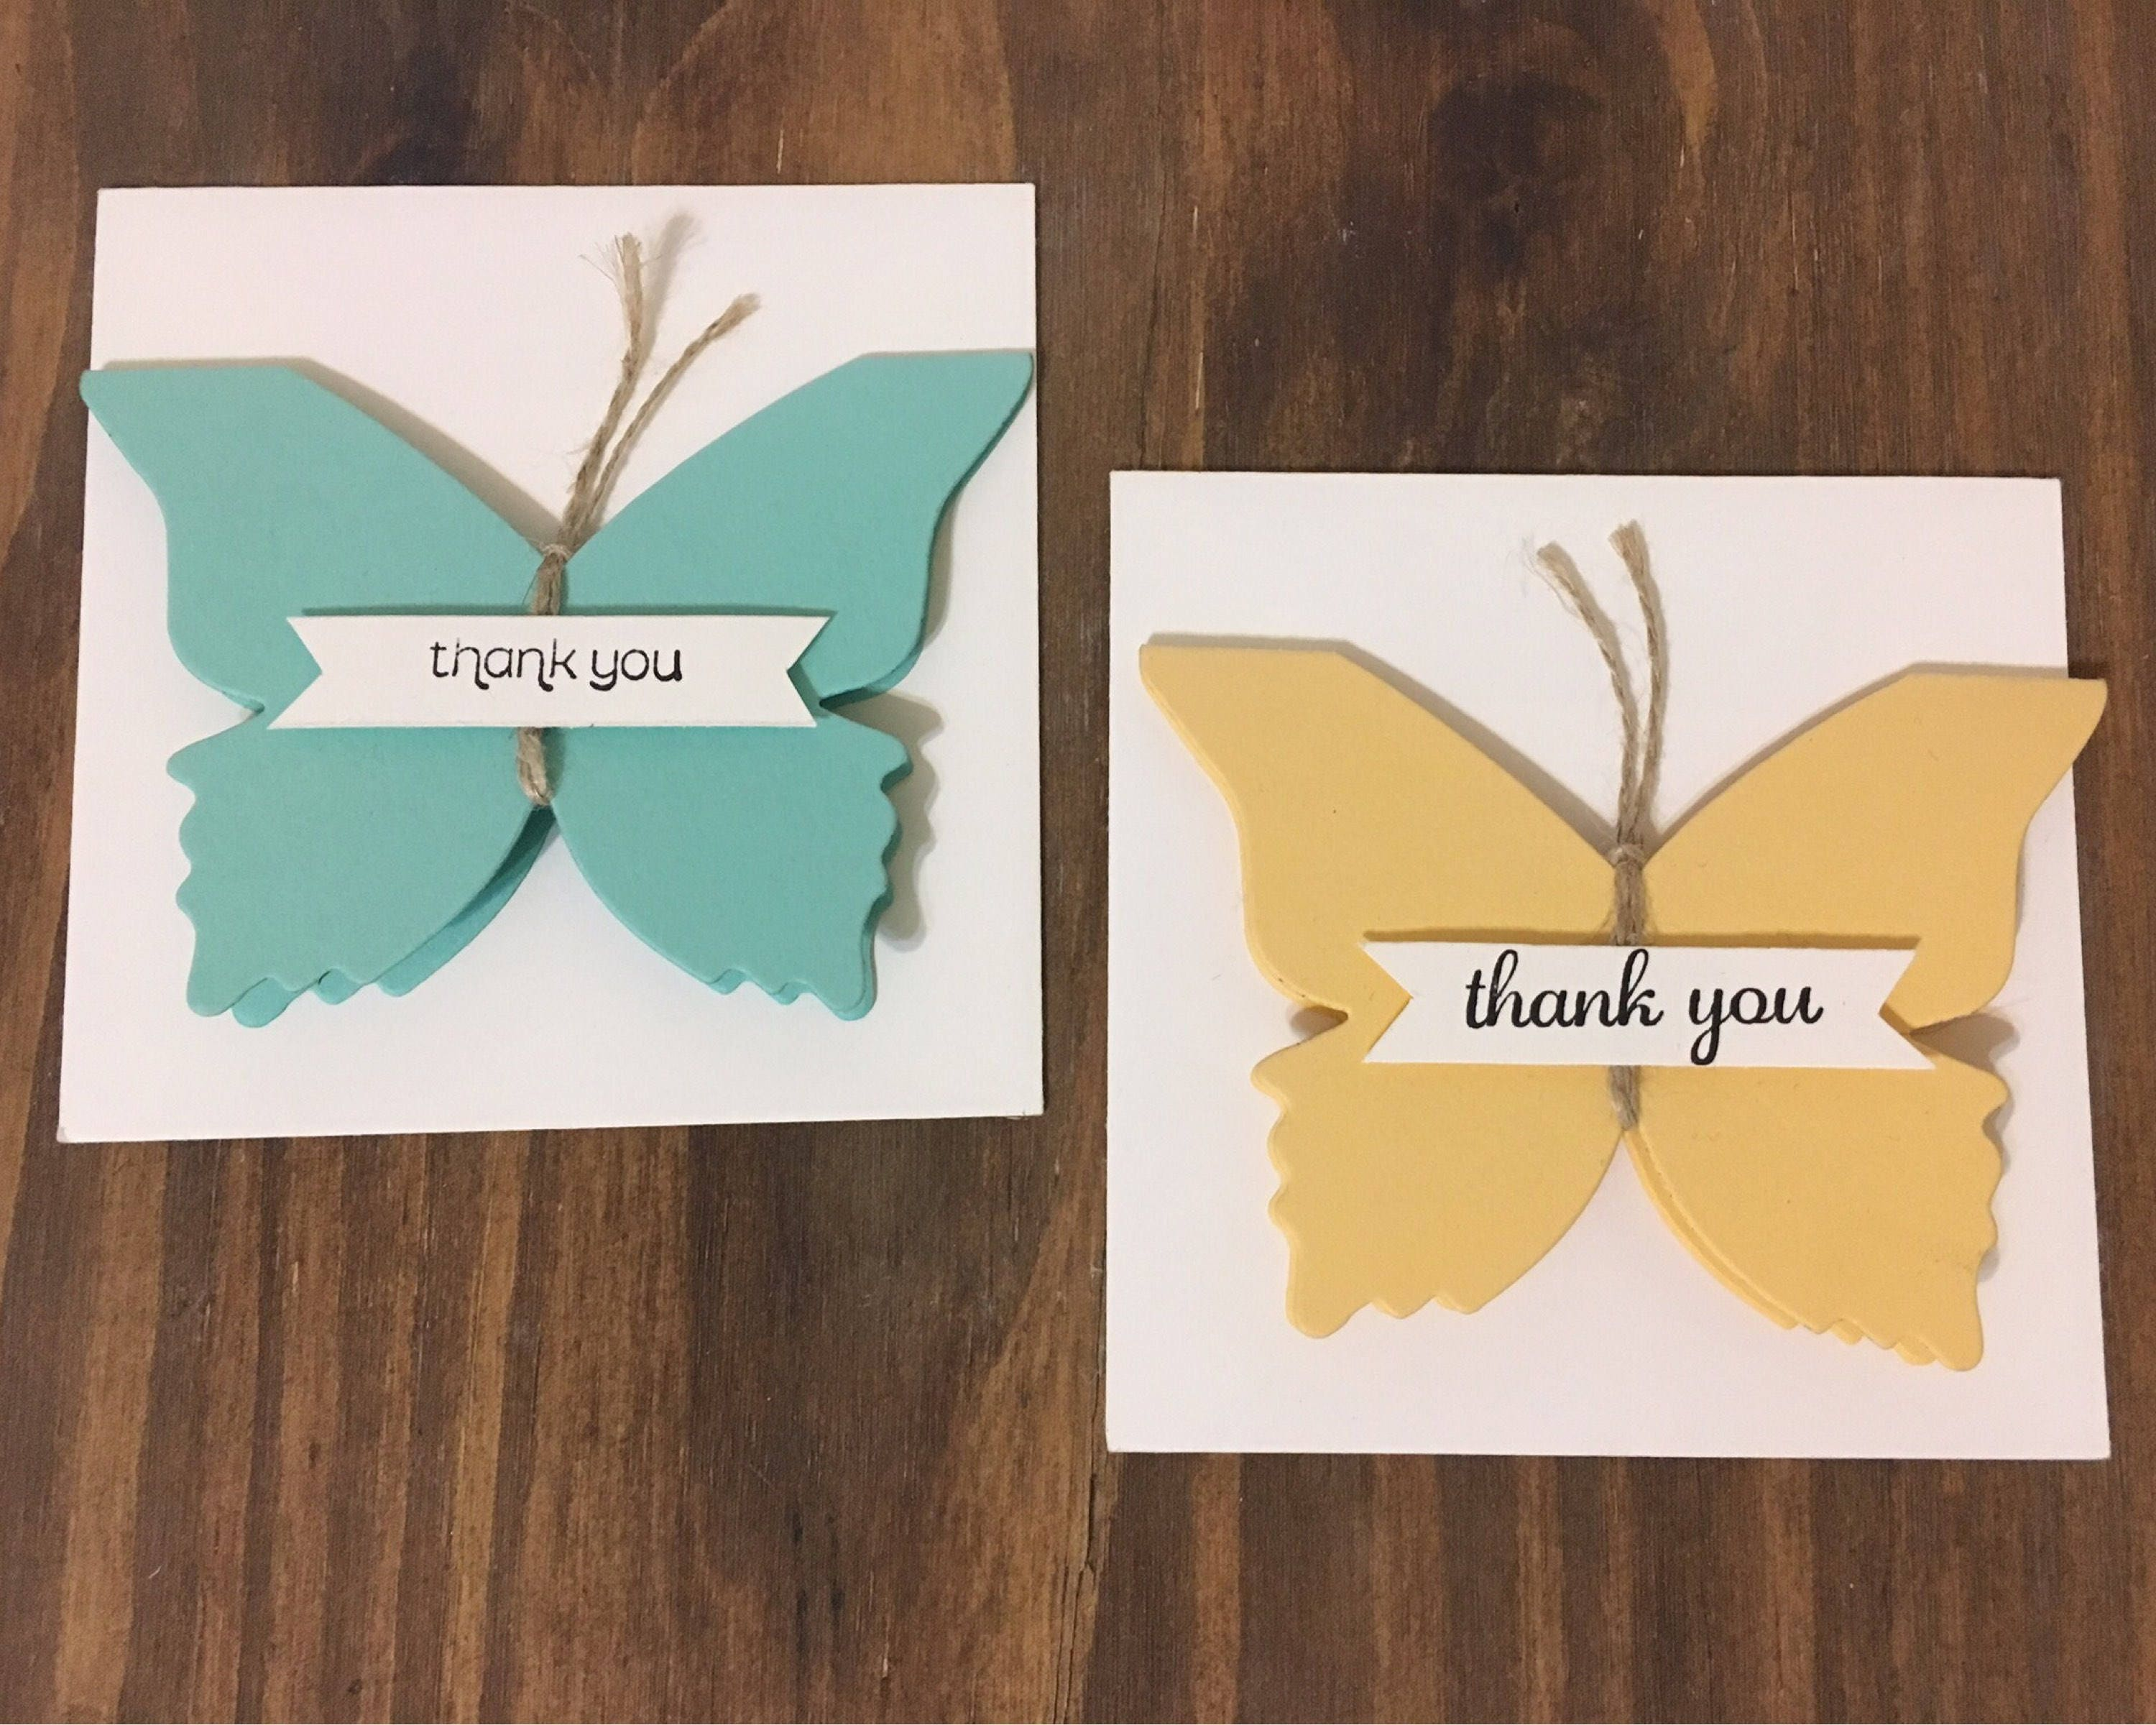 Thank you butterfly mini note card hand stamped greeting card thank you butterfly mini note card hand stamped greeting card thank you card m4hsunfo